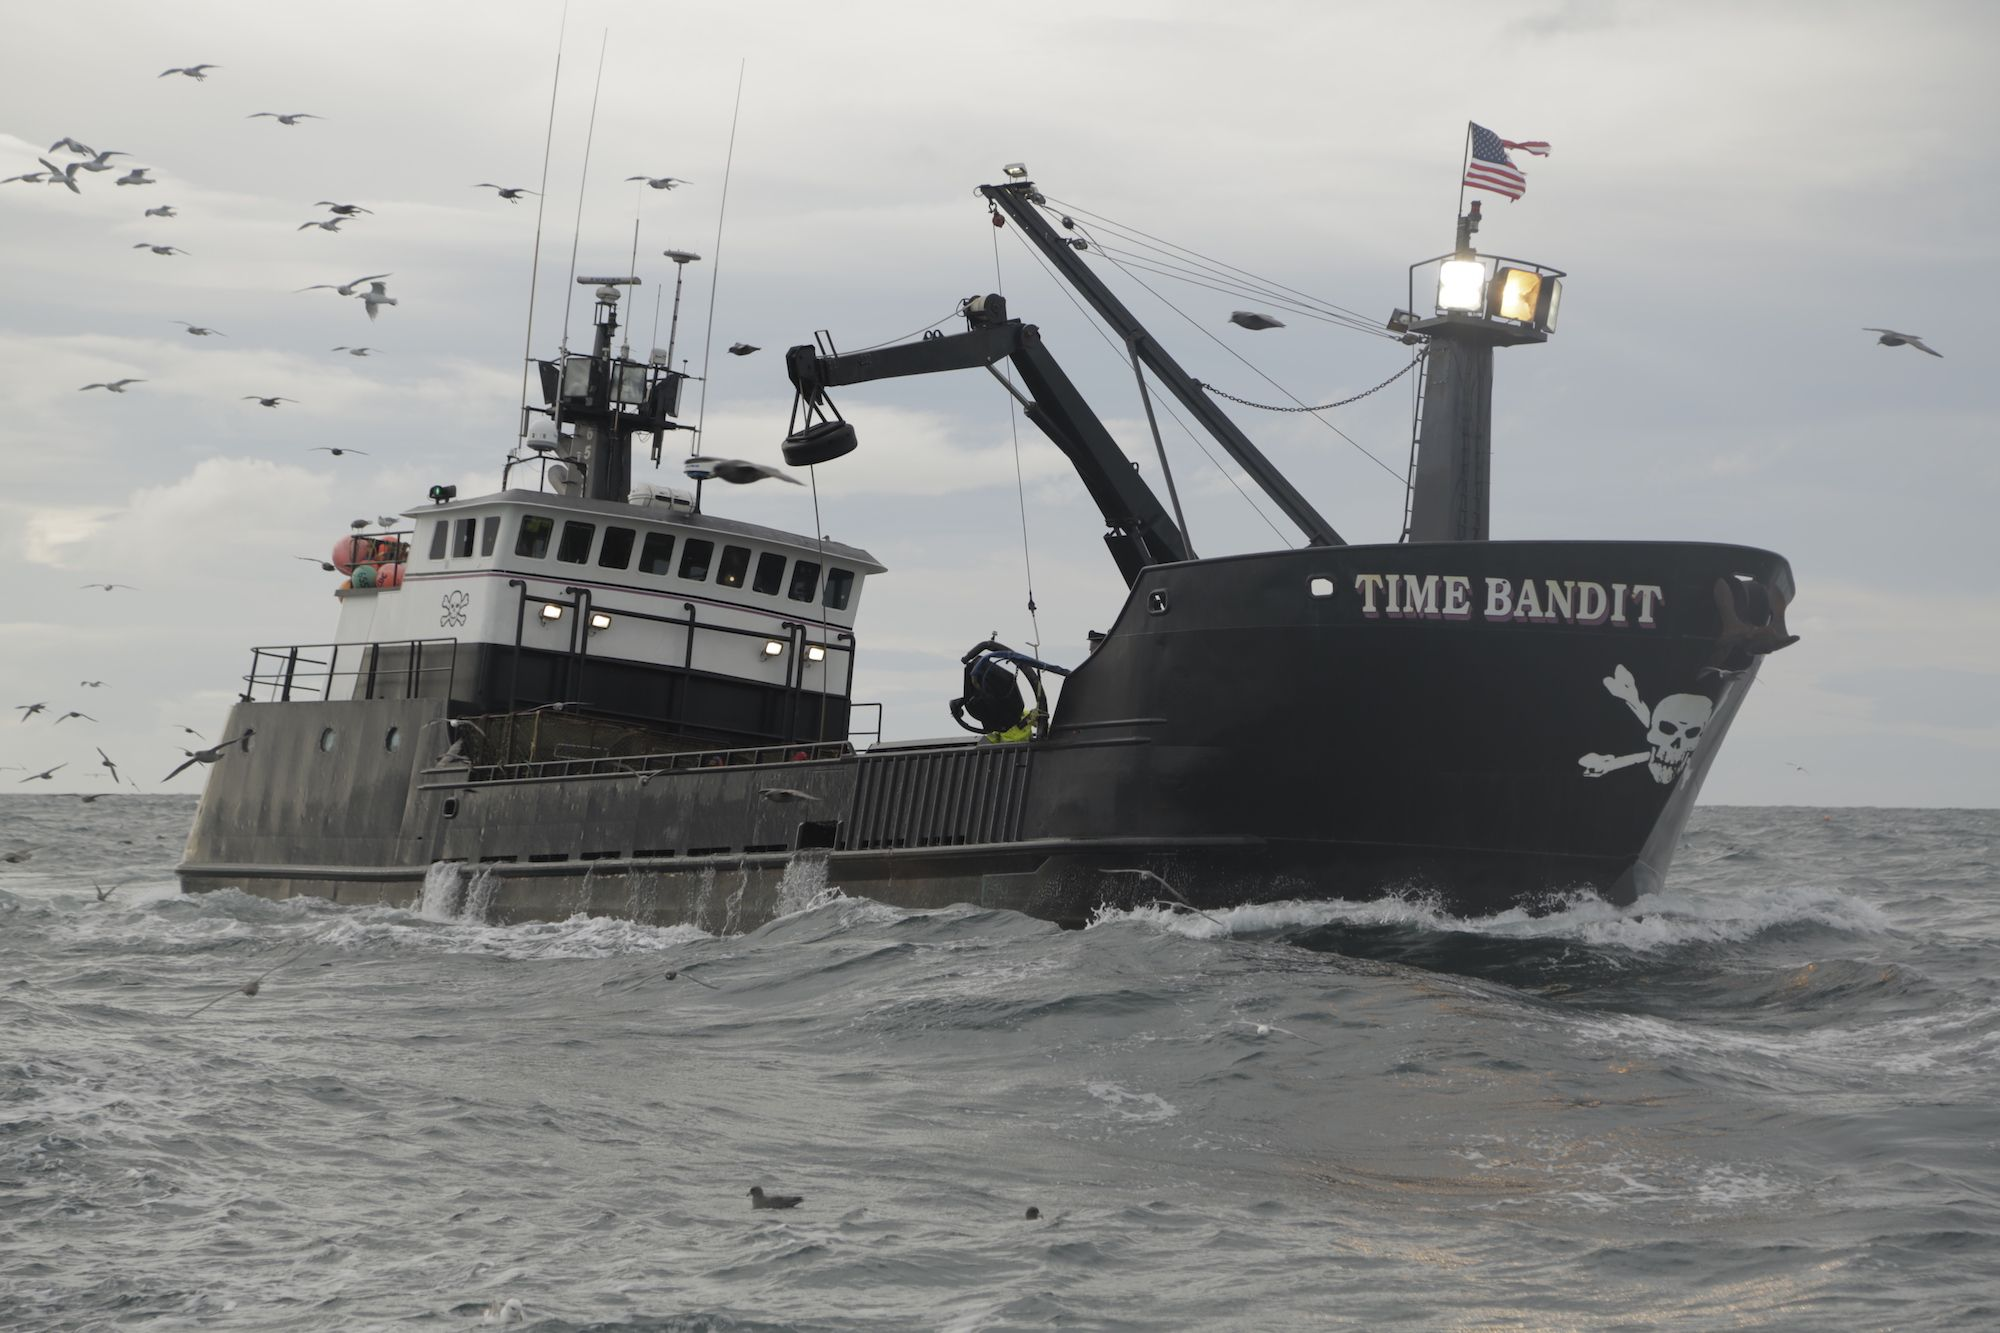 Time Bandit Deadliest Catch — What Happened to the Time Bandit?